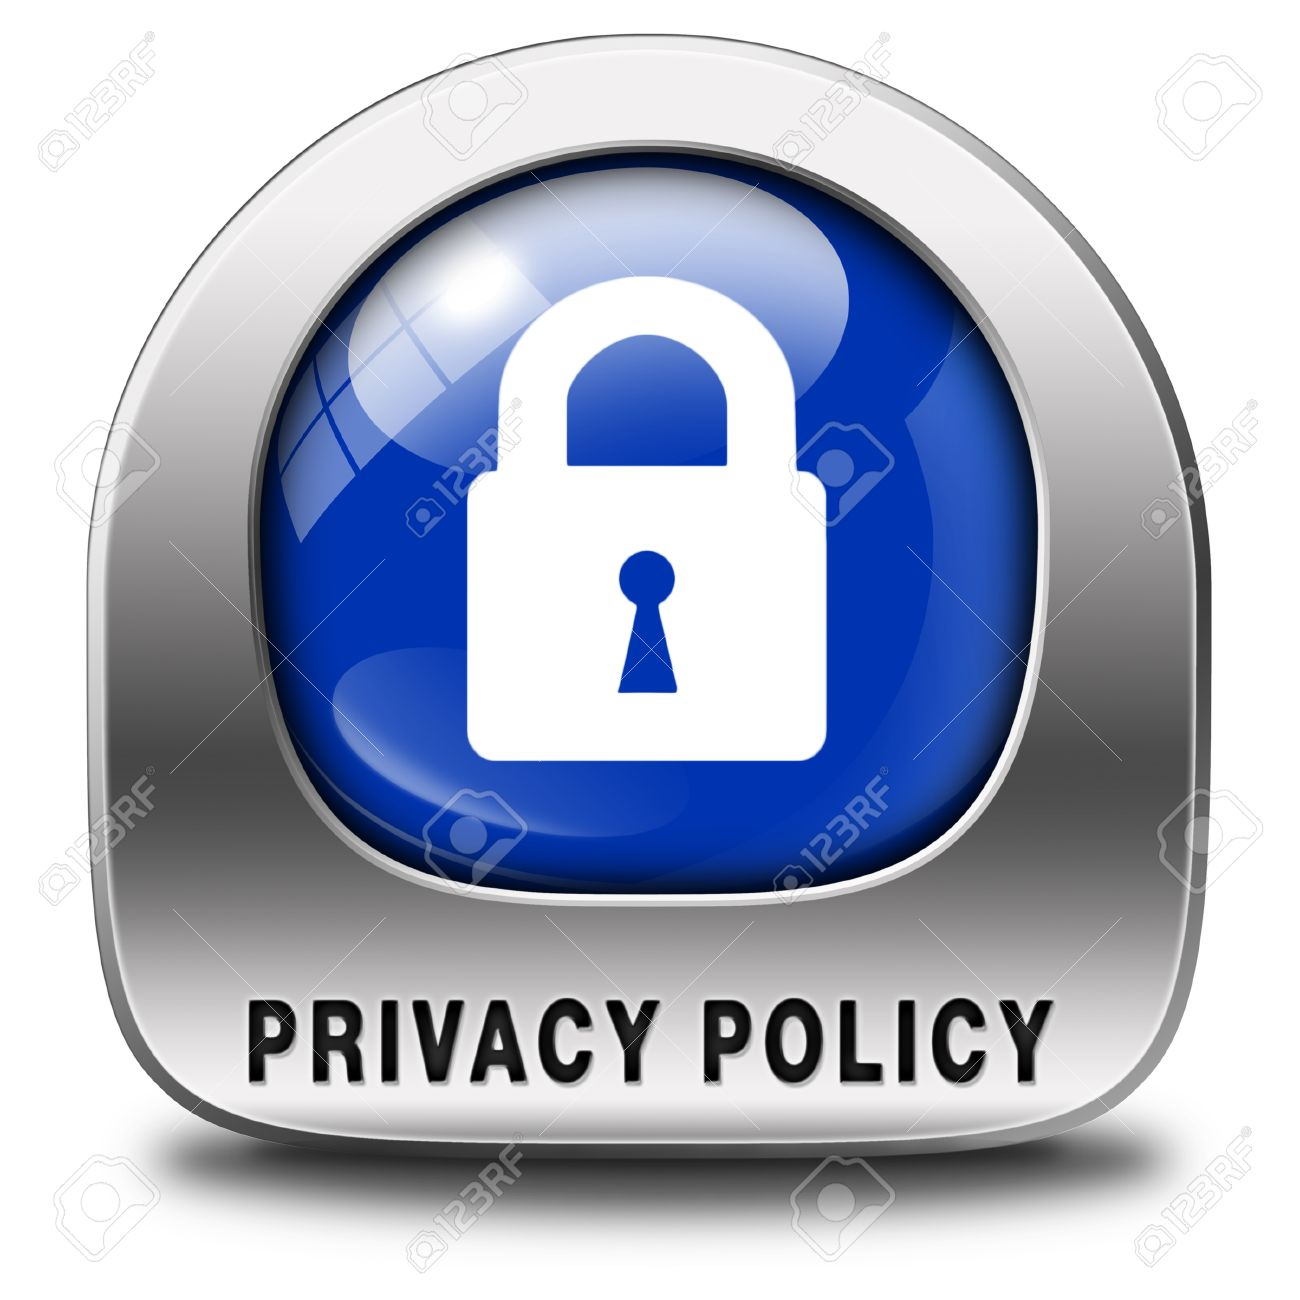 Terms of use - Stock Photo Privacy Policy Terms Of Use For Data And Personal Information Protection Safety Icon Label Or Sign